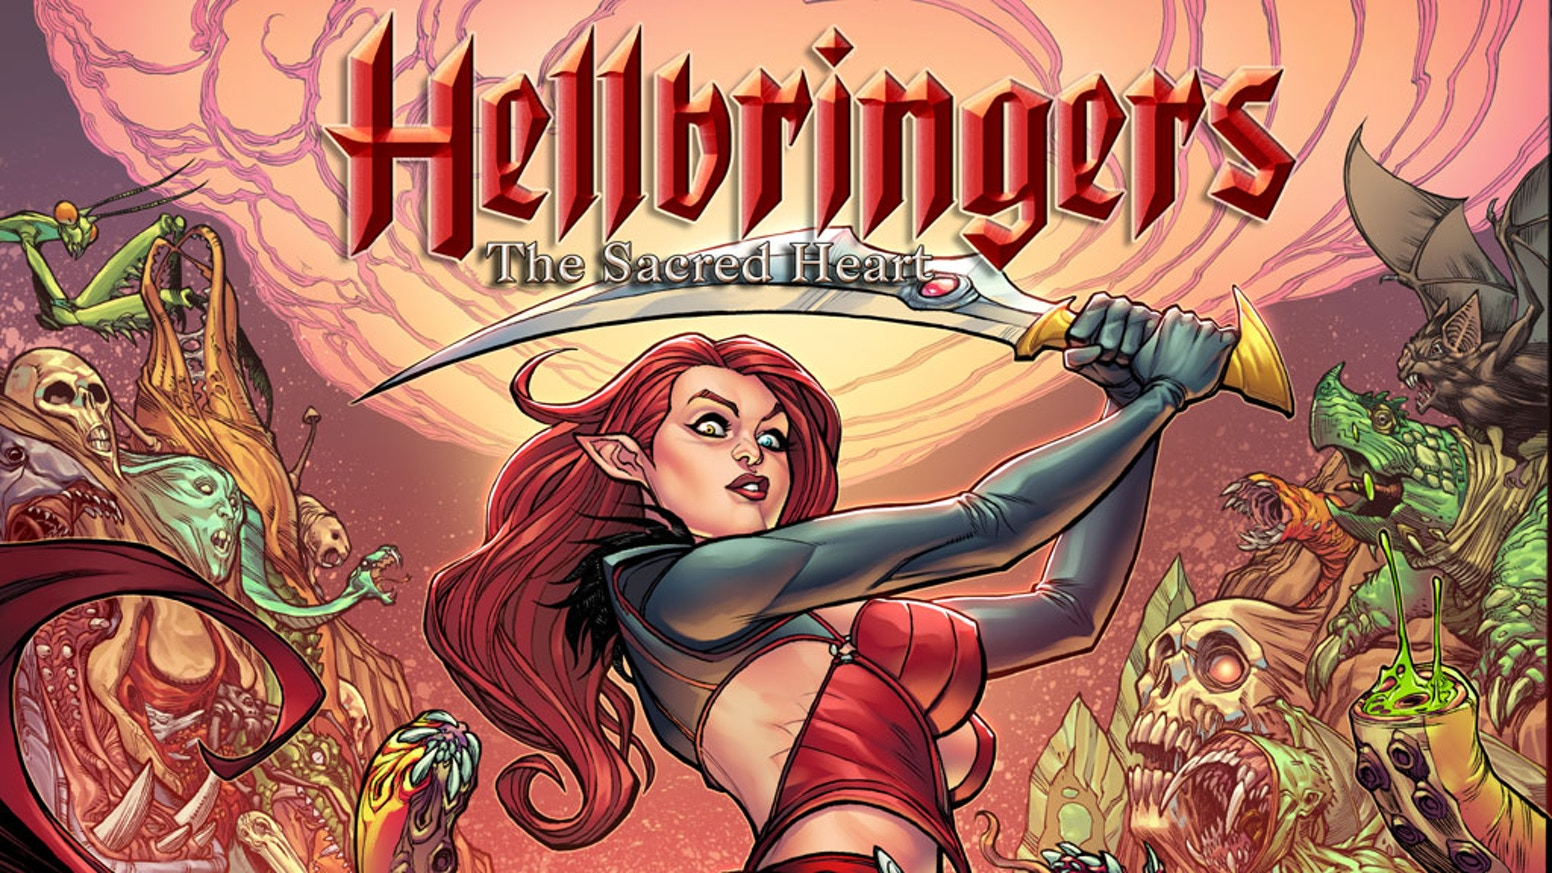 The Queen of Hell must take back her kingdom in this new comic by Chad Hardin, Ryan Brown, and Mark May.